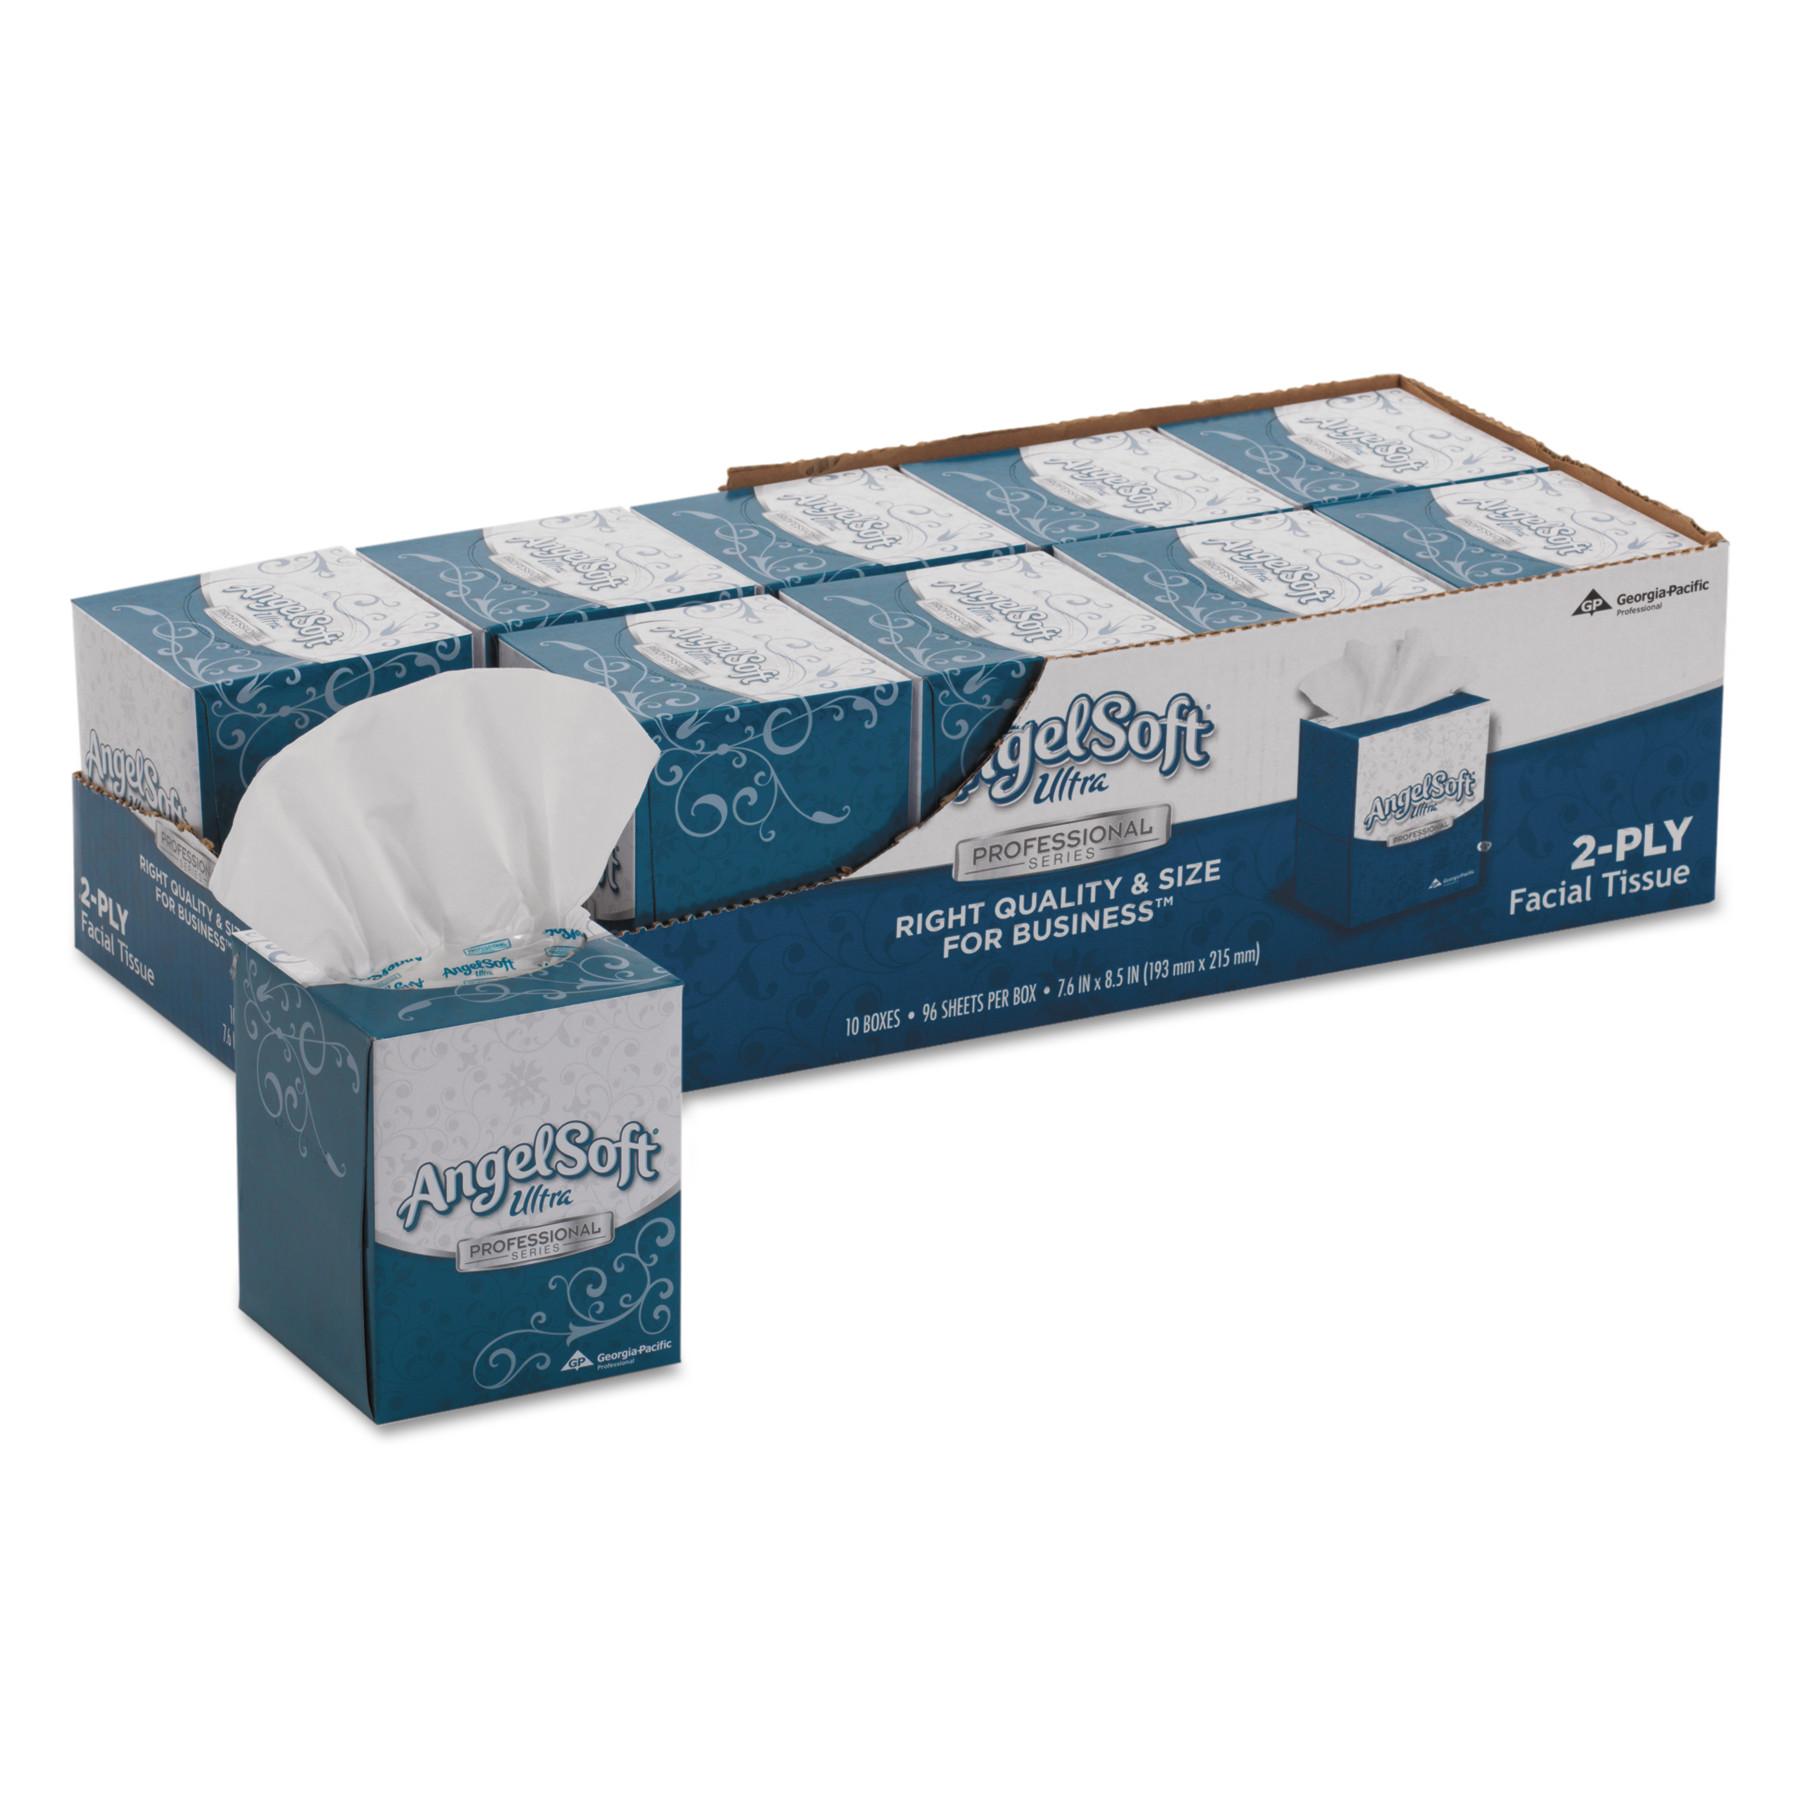 Angel Soft ps Ultra Facial Tissue, 2-Ply, White, 7 3/5 x 8 1/2, 96/Box, 10 Boxes/Carton